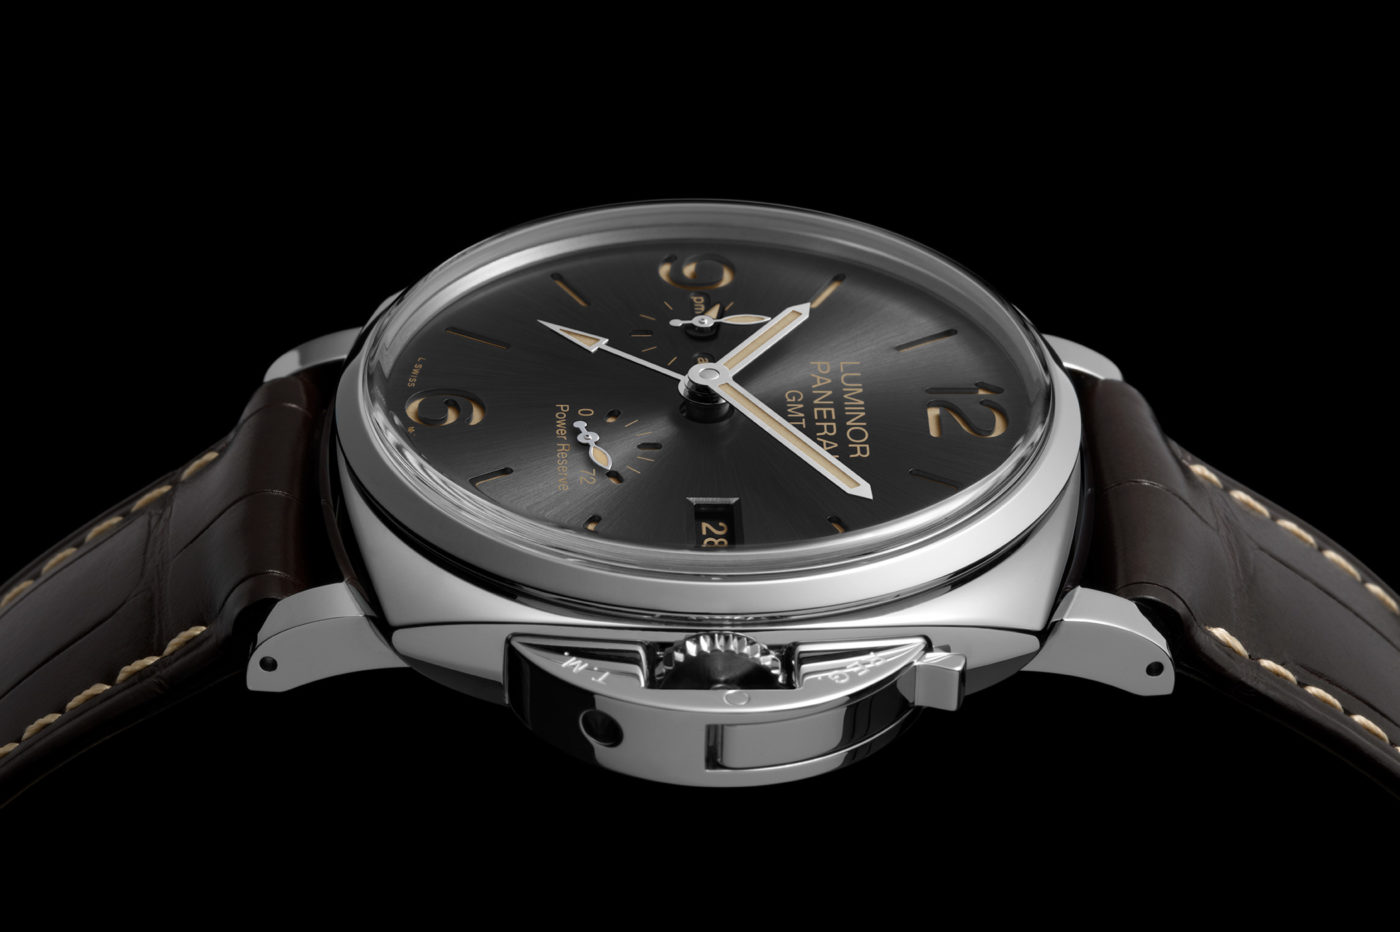 Panerai Luminor Due 3 Days Automatic i GMT Power Reserve Automatic 45 mm – SIHH 2018